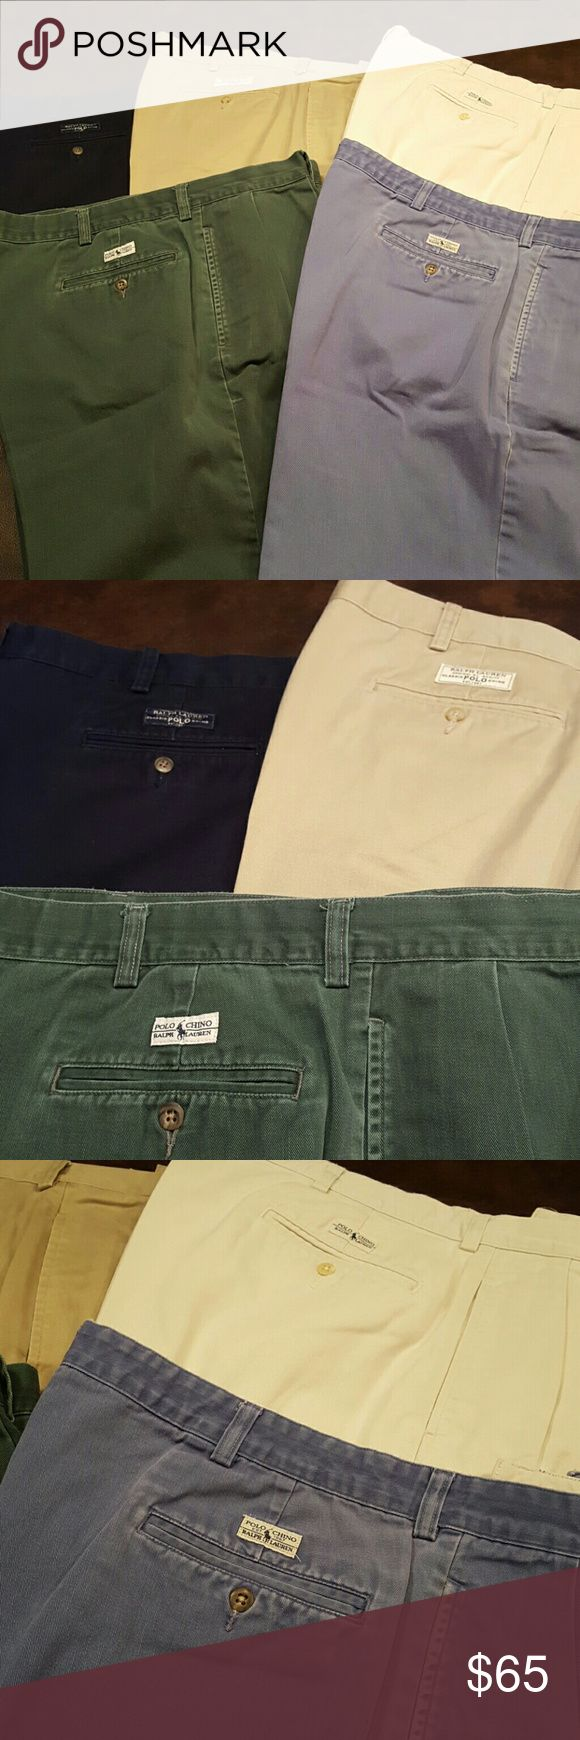 Men's Polo Ralph Lauren Shorts sz 40 EUC 5 pairs Pleated front shorts from Polo. 9 in inseam. Button and zipper front. All Gently worn in EUC. Green, faded blue, navy, tan and khaki. Sz 40 waist.  All professionally cleaned and ready for wear. Polo by Ralph Lauren Shorts